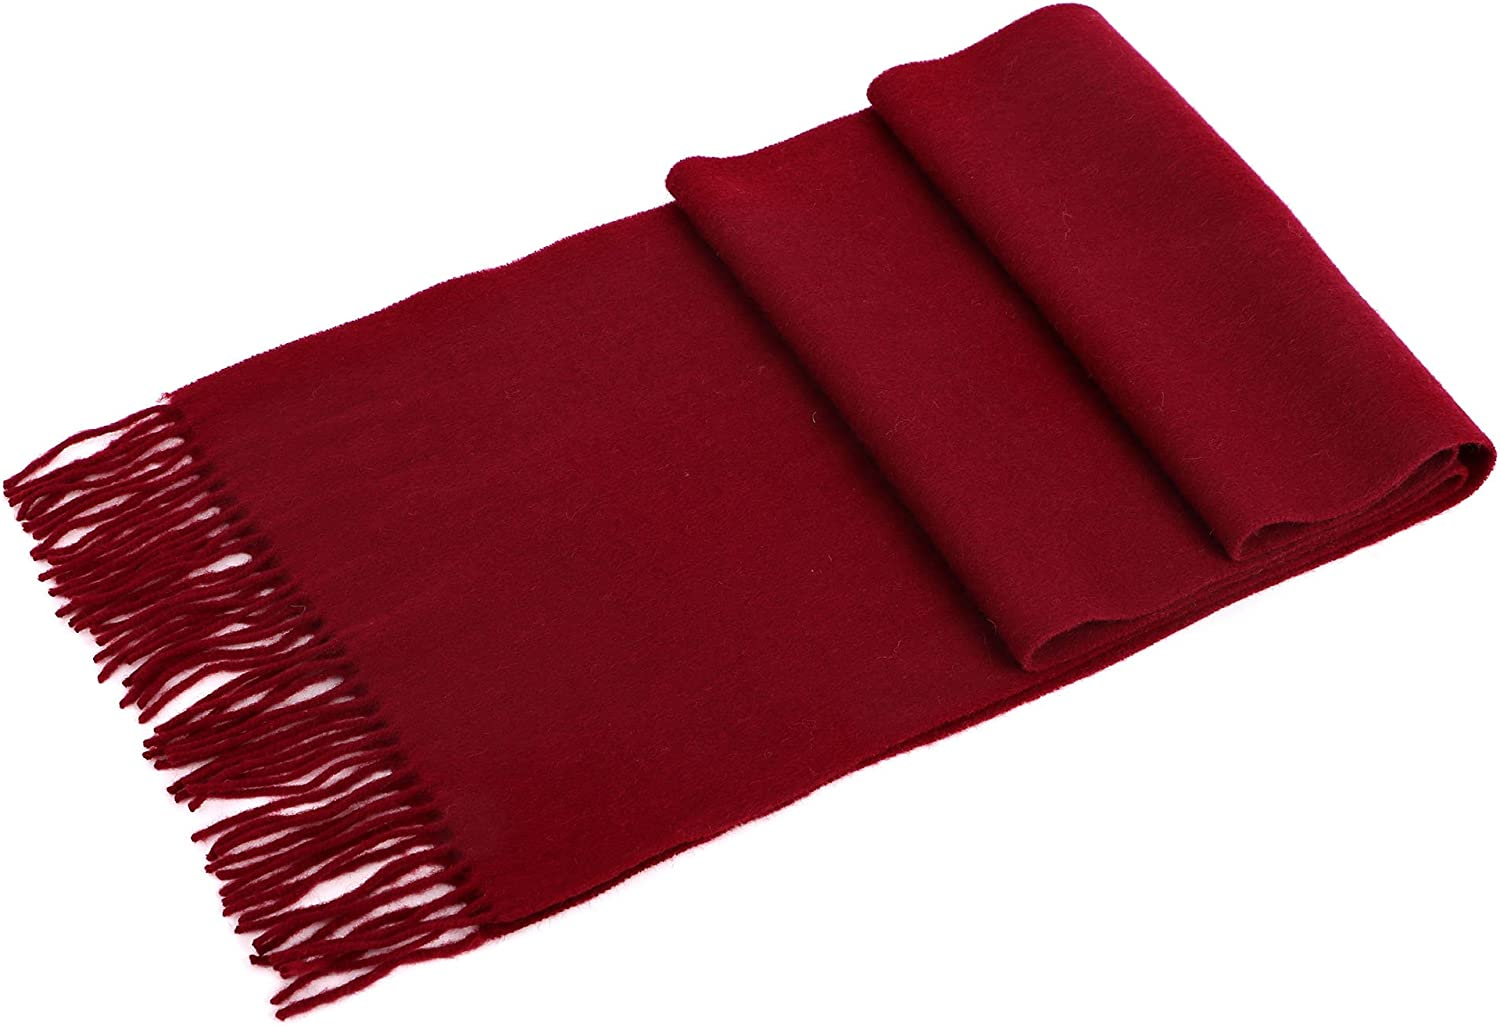 Personalized Embroidery Men Women's Cashmere Scarf w/Gift Box, 64 x 11.5 Inch